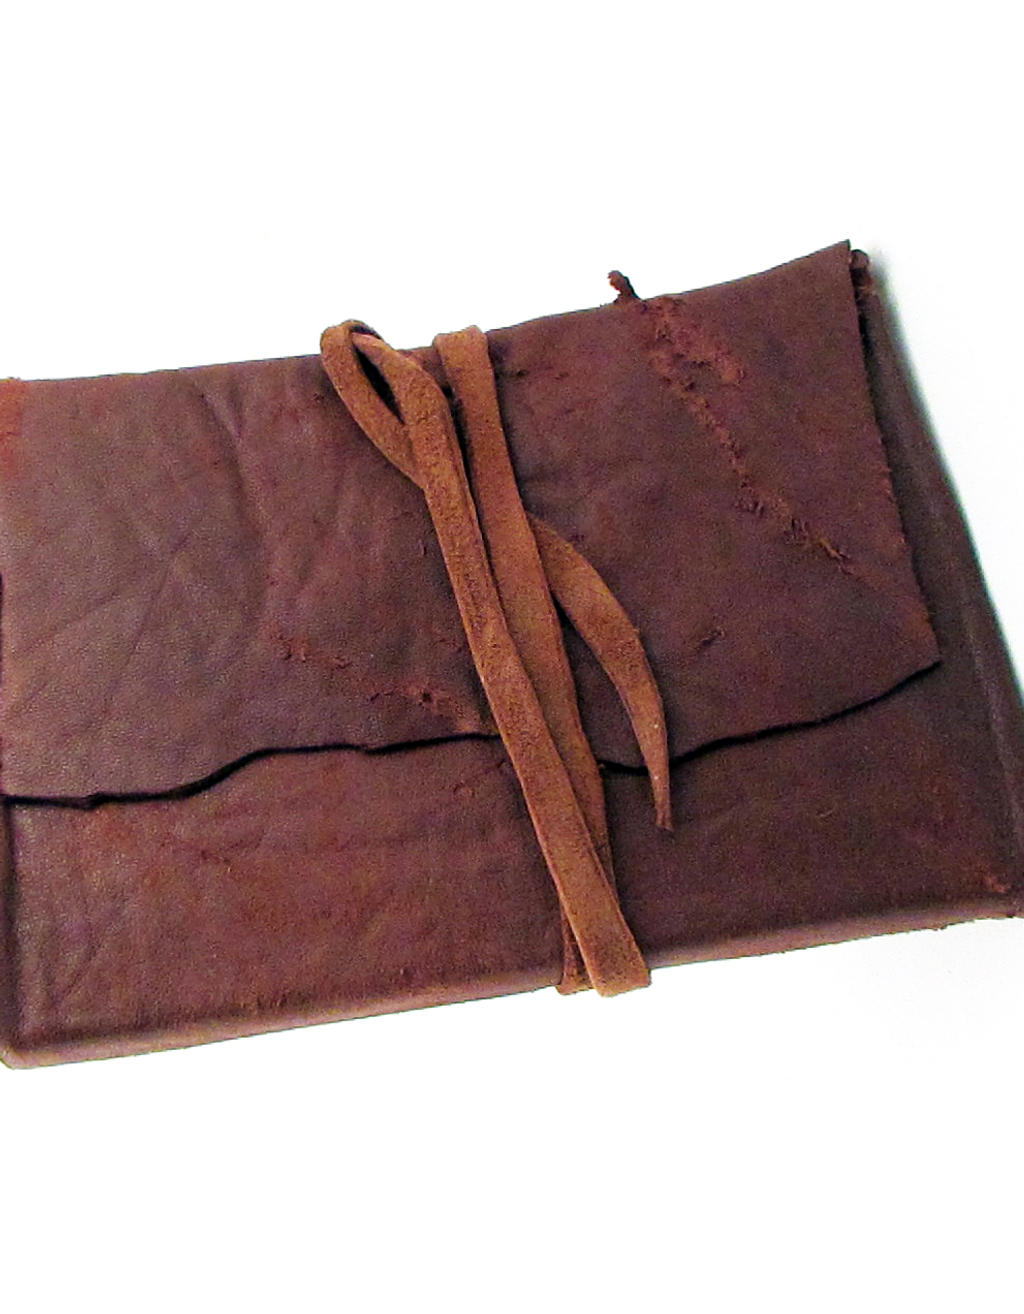 Mini 12th century book by MilleCuirs